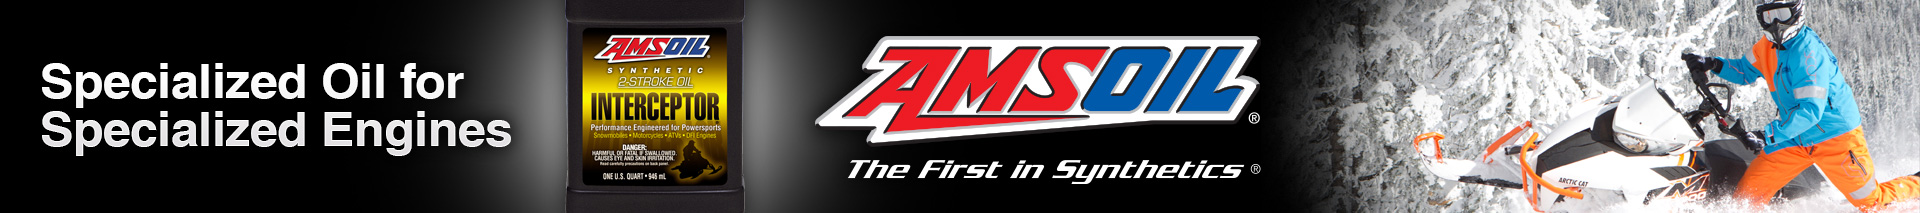 AMSOIL INTERCEPTOR™ oil is recommended for Polaris®, Arctic Cat® and Ski-Doo®.